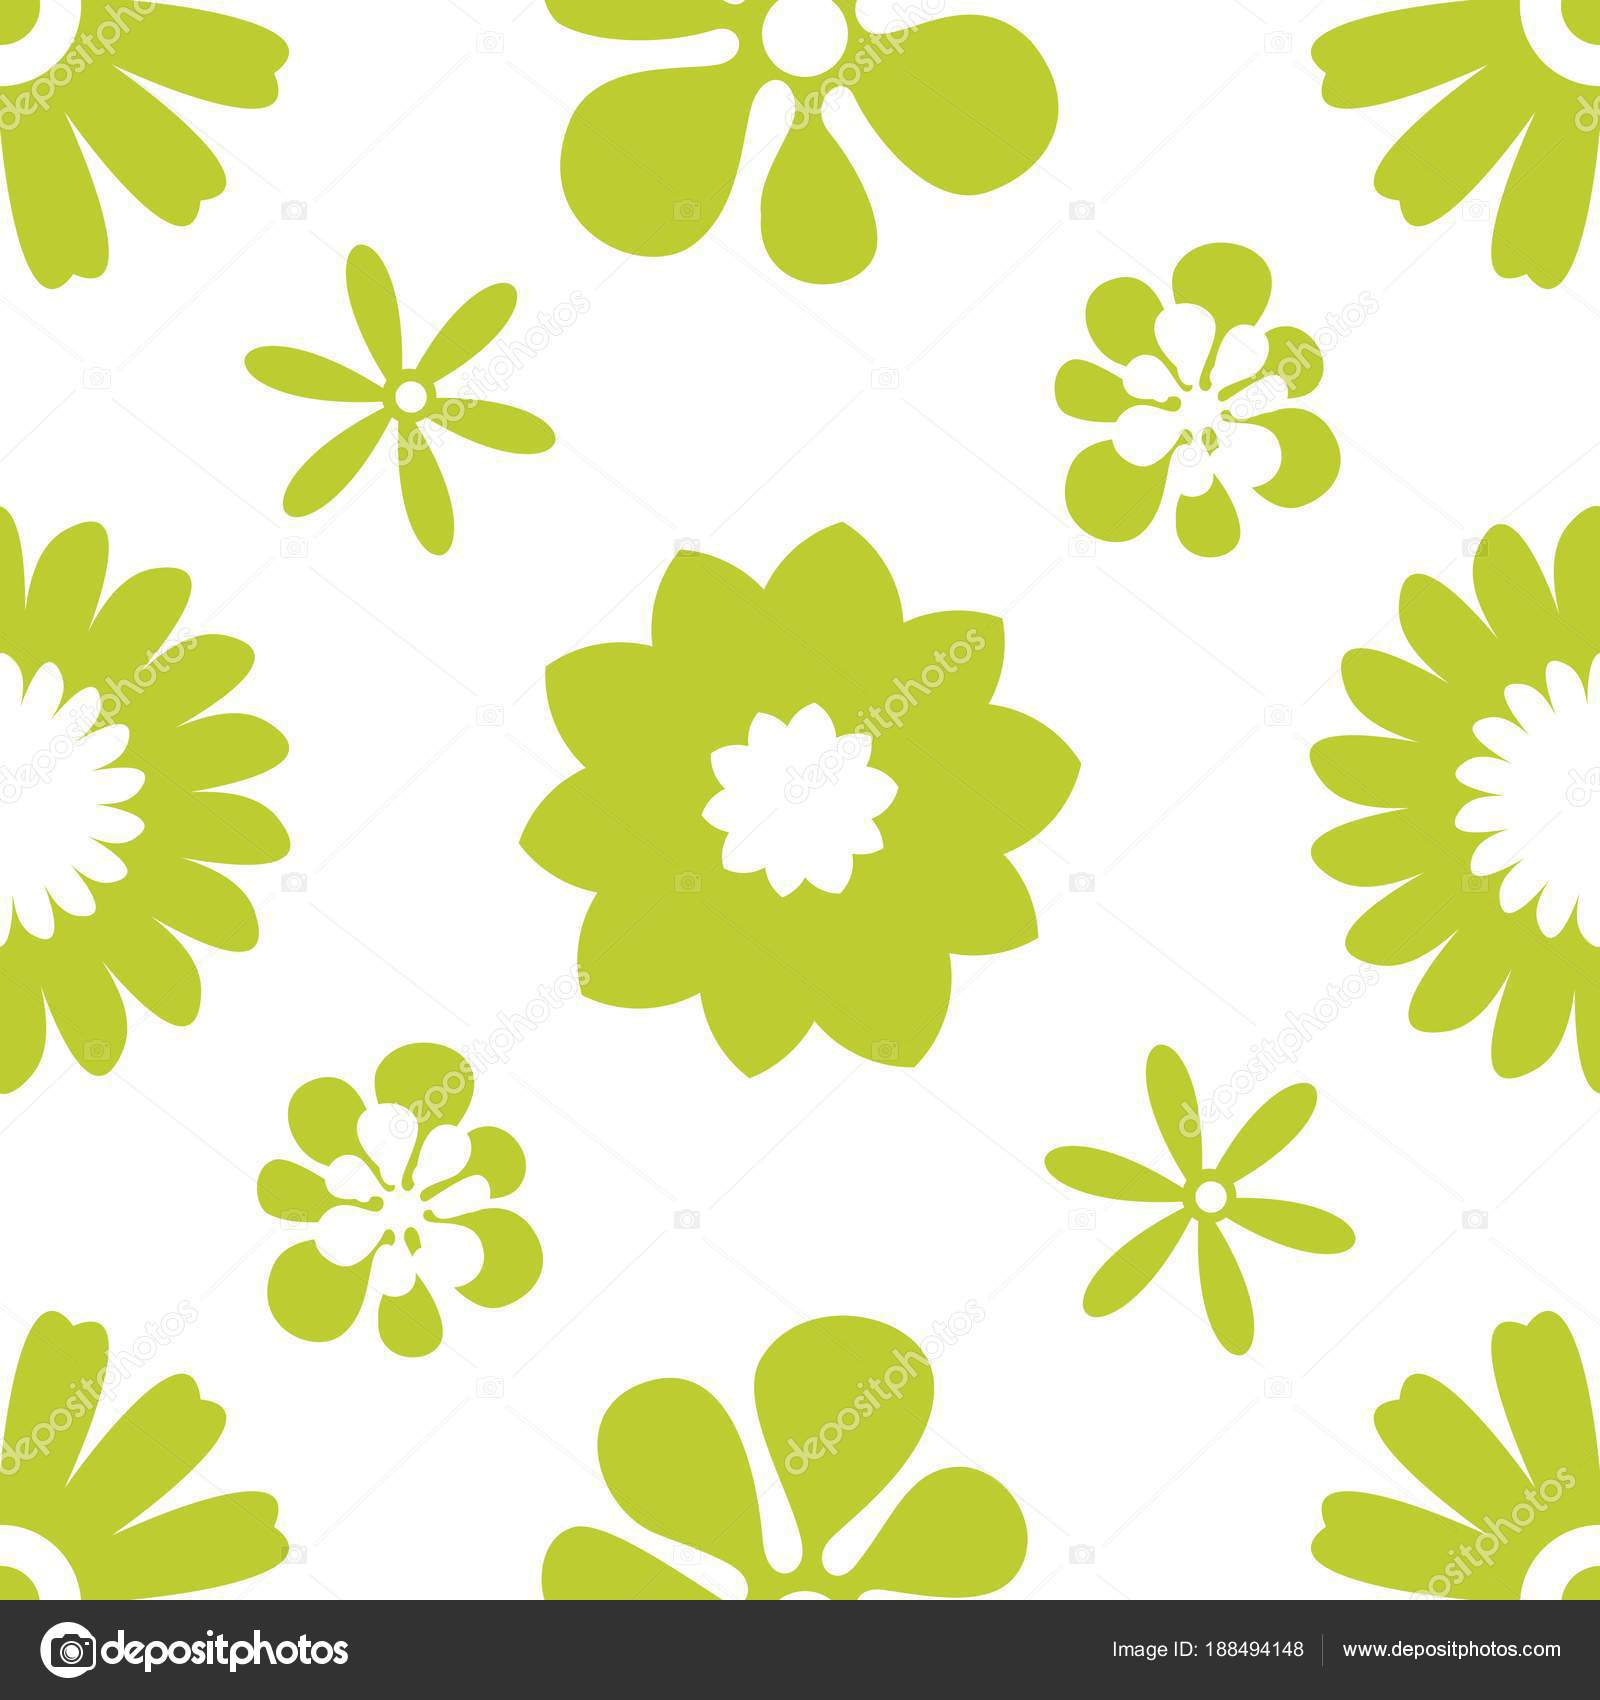 Flower Simple Minimalistic Seamless Pattern Graphic Design For Paper